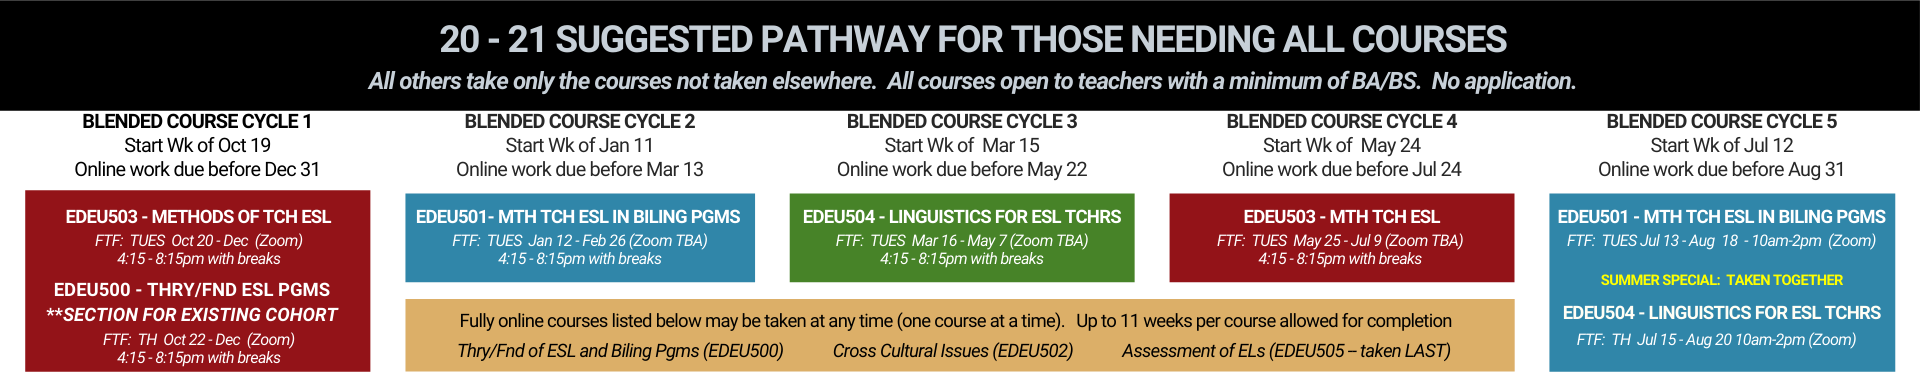 ESL/Bilingual Endorsement Fast Track Alternative Pathway  20 - 21 SUGGESTED PATHWAY FOR THOSE NEEDING ALL COURSES All others take only the courses not taken elsewhere.  All courses open to teachers with a minimum of BA/BS.  No application. EDEU503 - METHODS OF TCH ESL EDEU500 - THry/Fnd ESL PGMS EDEU501 - MTH TCH ESL IN BILING PGMS  EDEU504 - Linguistics for ESL Tchrs EDEU503 - MTH TCH ESL EDEU501 - MTH TCH ESL IN BILING PGMS EDEU504 - Linguistics for ESL Tchrs  Fully online courses listed below may be taken at any time (one course at a time).   Up to 11 weeks per course allowed for completion Thry/Fnd of ESL and Biling Pgms (EDEU500)             Cross Cultural Issues (EDEU502)             Assessment of ELs (EDEU505 -- taken LAST)